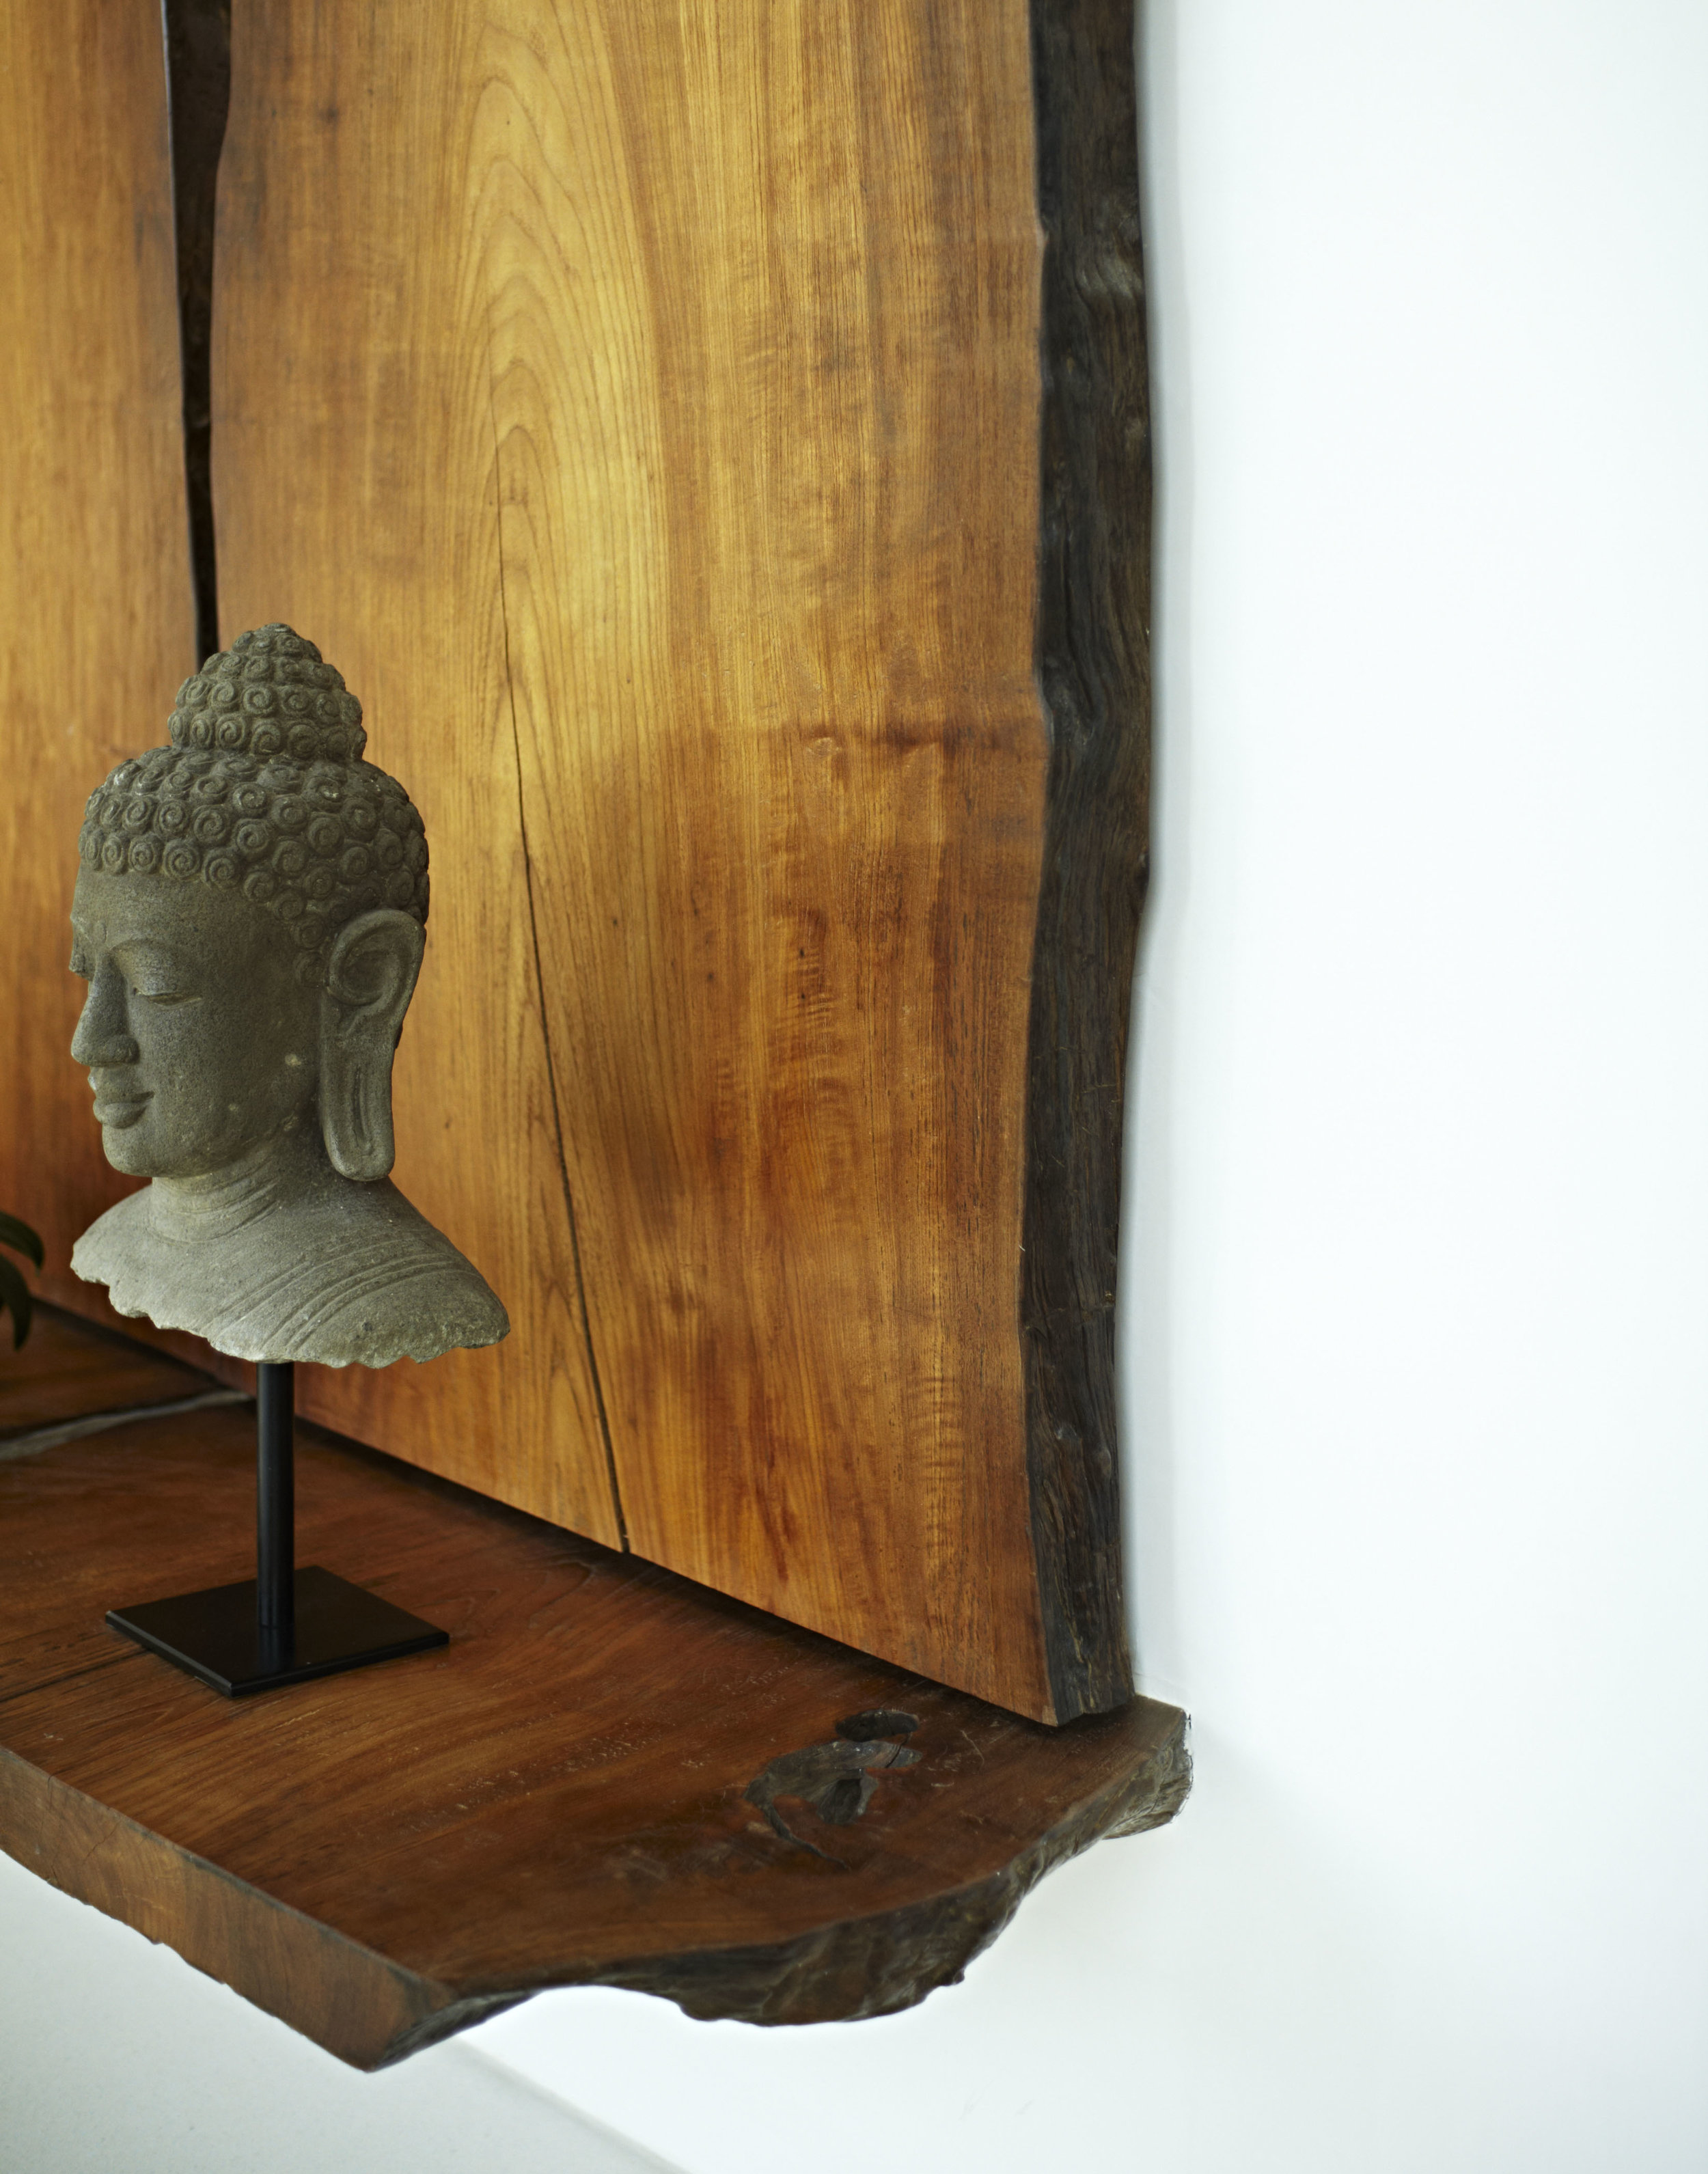 Buddha sculpture and wooden wall hanging and bench